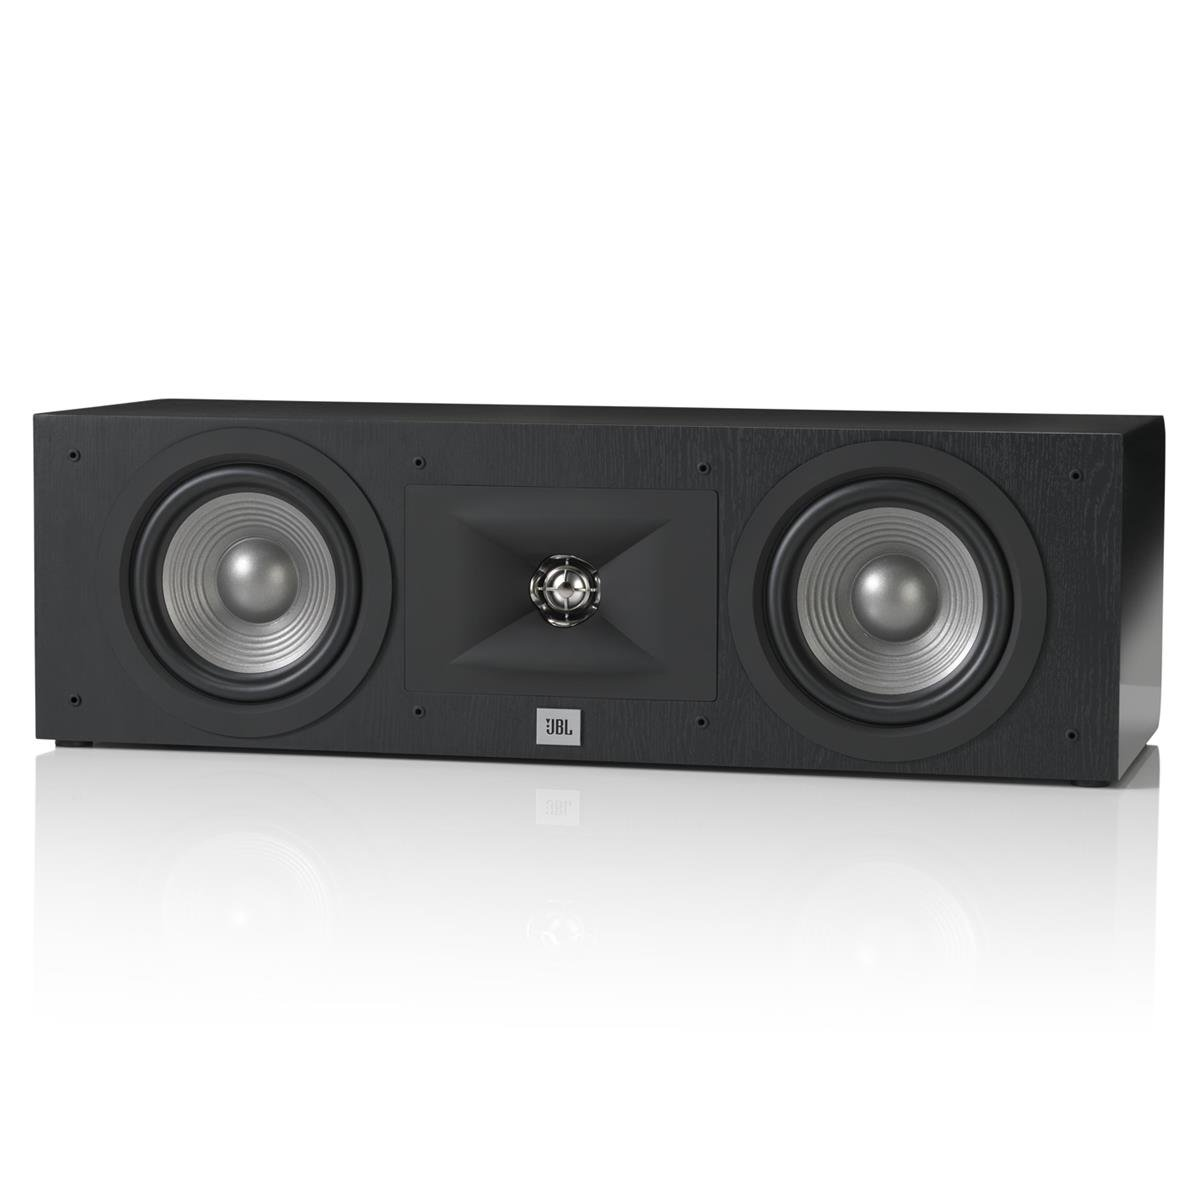 JBL Studio 235C Dual 6.5-Inch 2-Way Center Channel Loudspeaker by JBL